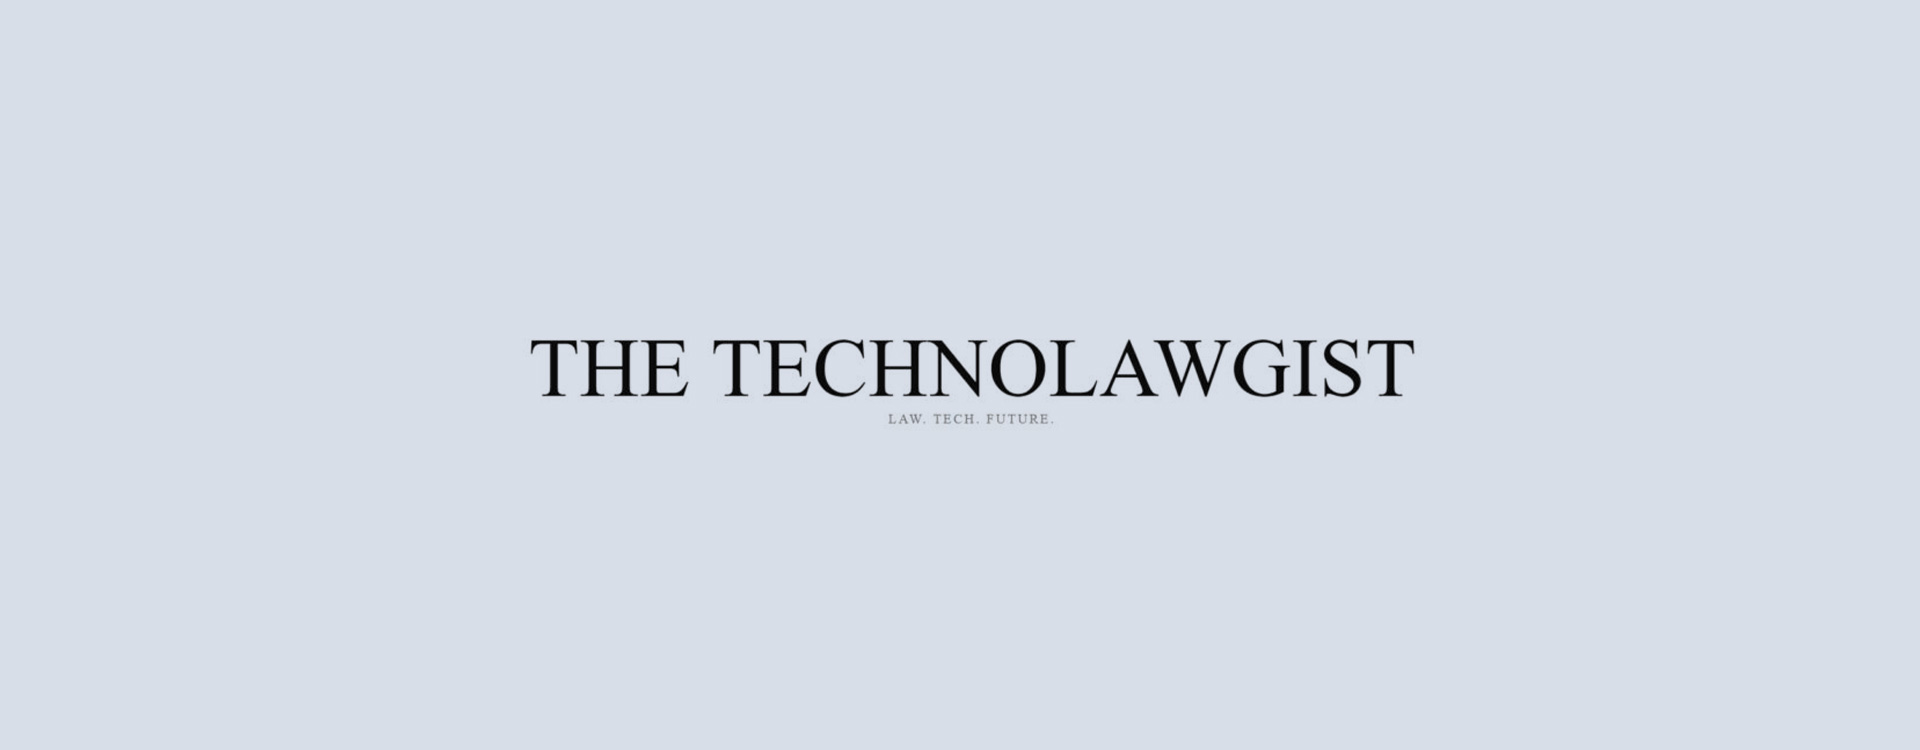 The Technolawgist logo